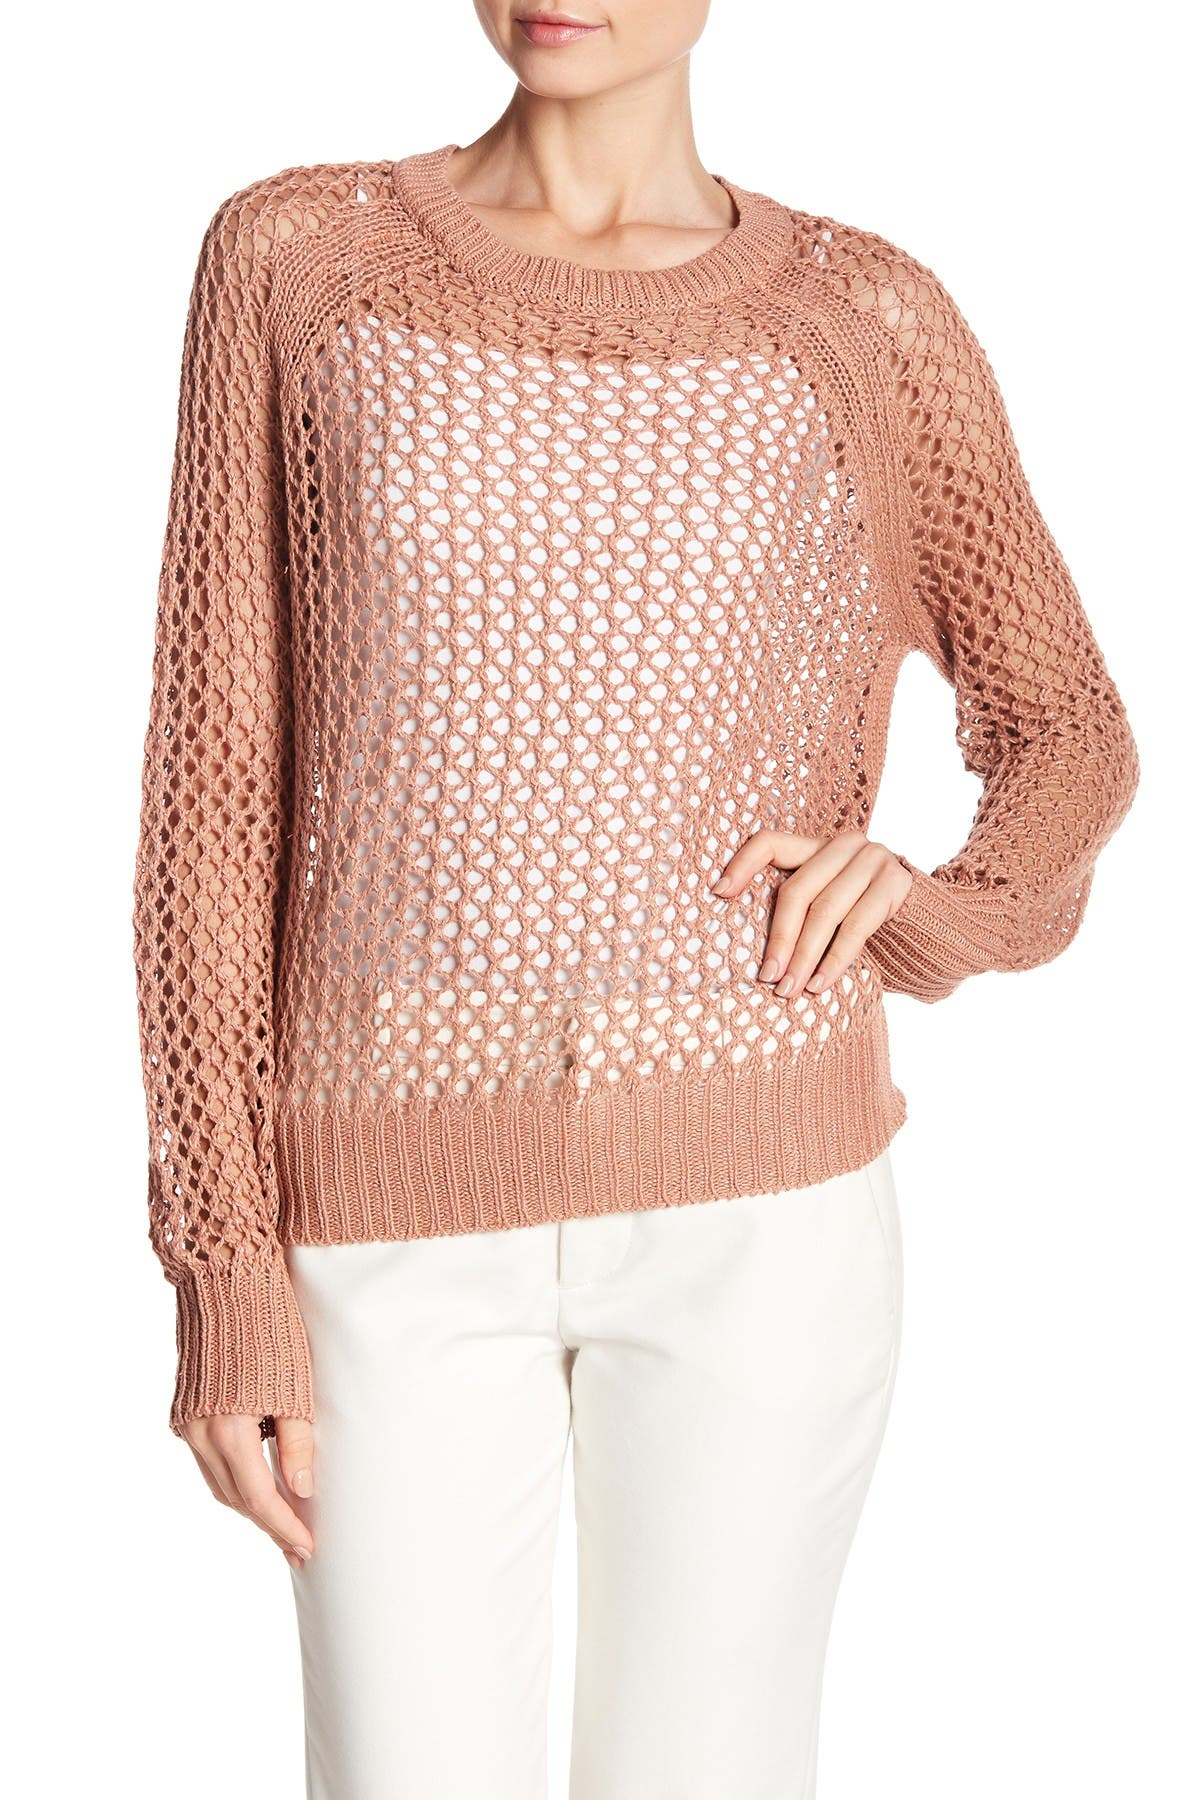 Image of 360 Cashmere Amira Open Linen Blend Sweater